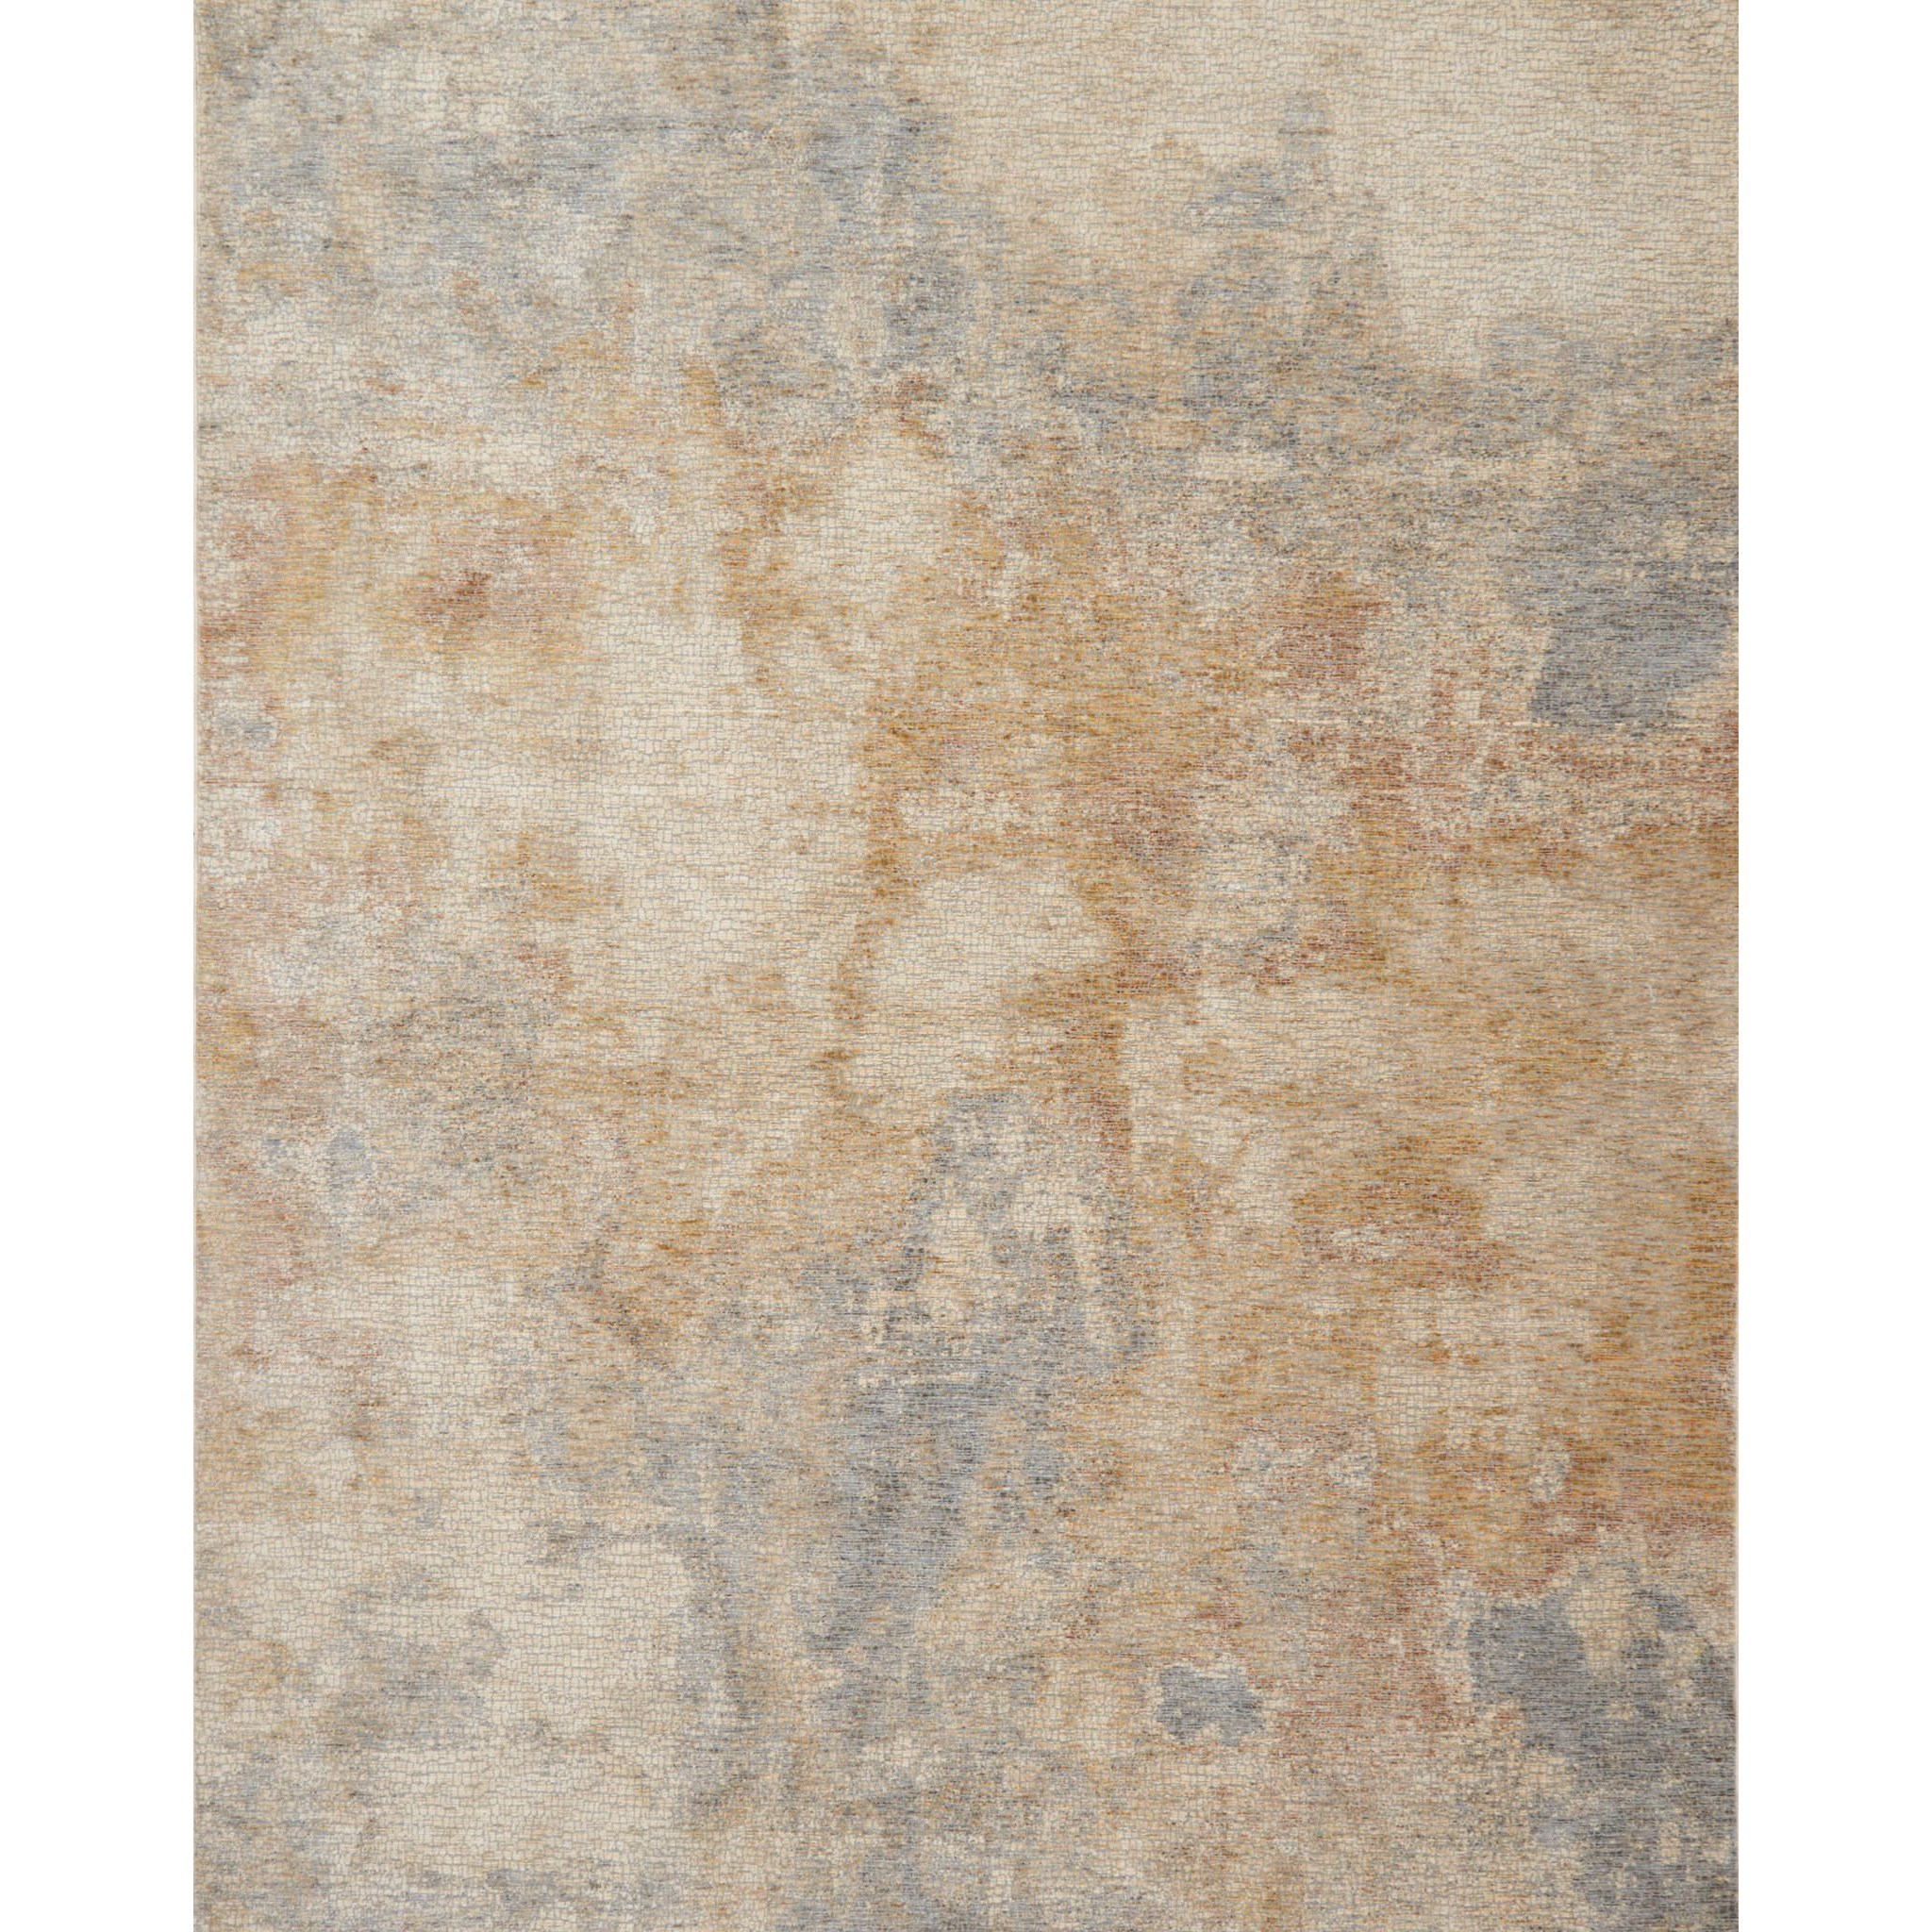 """Porcia 2'-8"""" X 10' Runner by Loloi Rugs at Sprintz Furniture"""